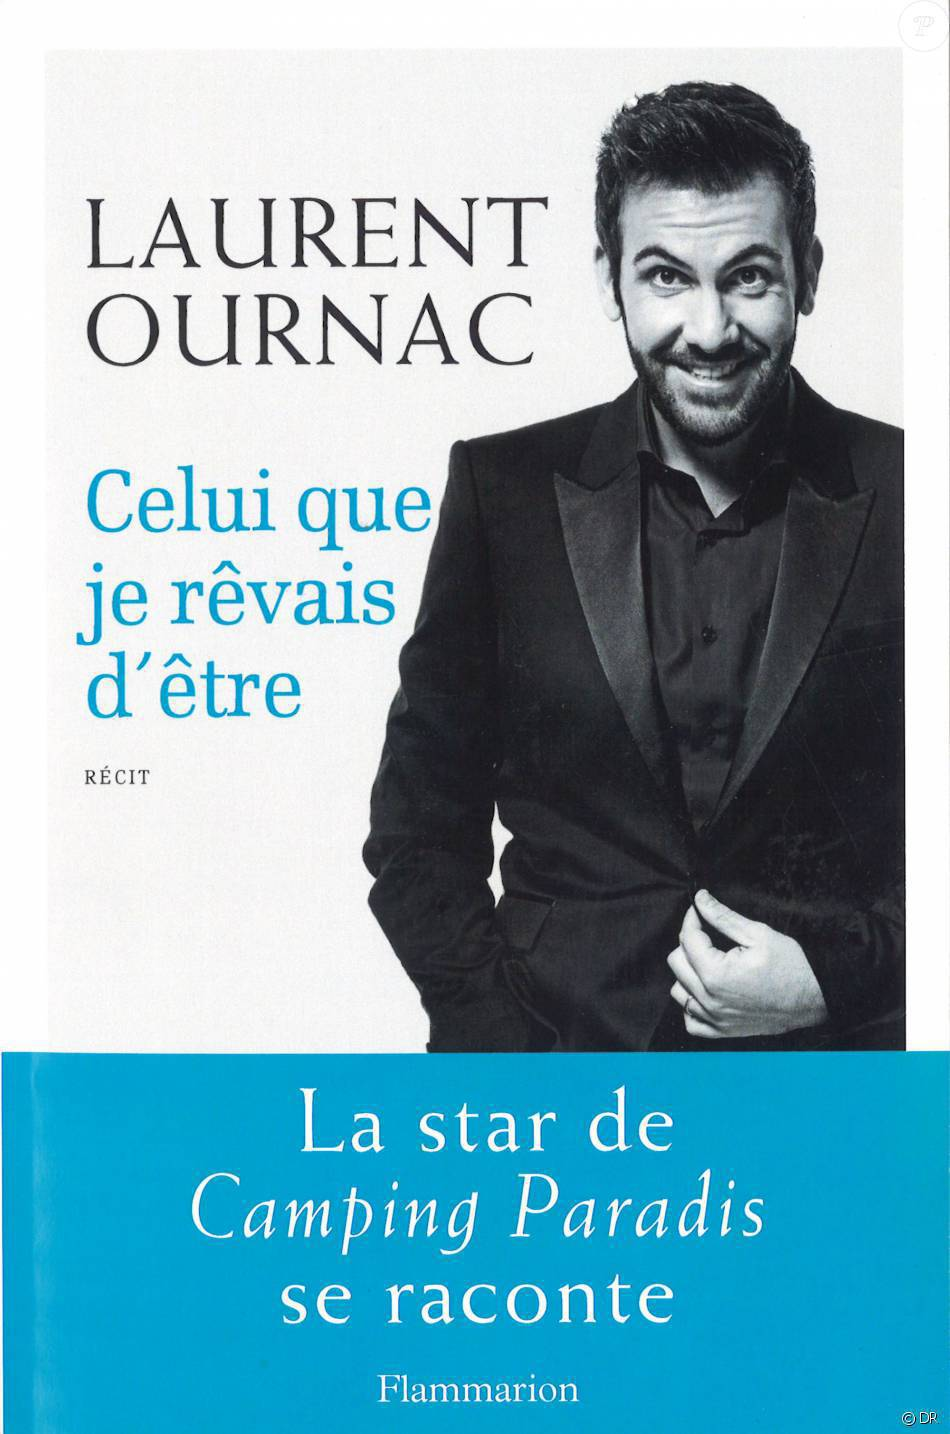 Exclusif - Laurent Ournac :